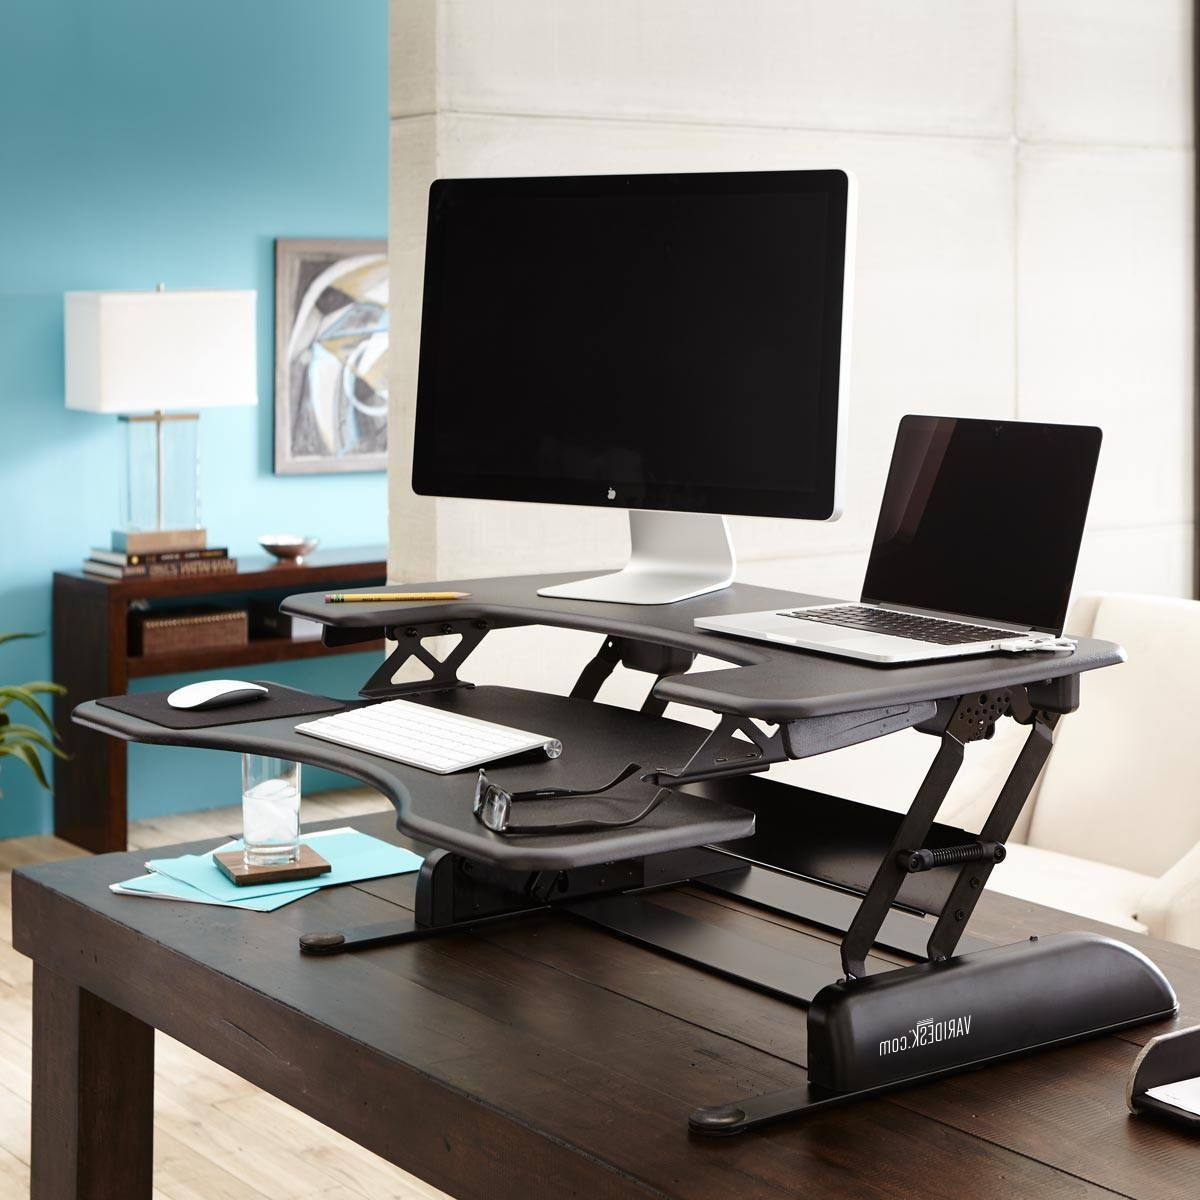 Trendy Computer Desks Under $500 For Varidesk Is Expensive – They Worth It? Well, That Depends (View 19 of 20)